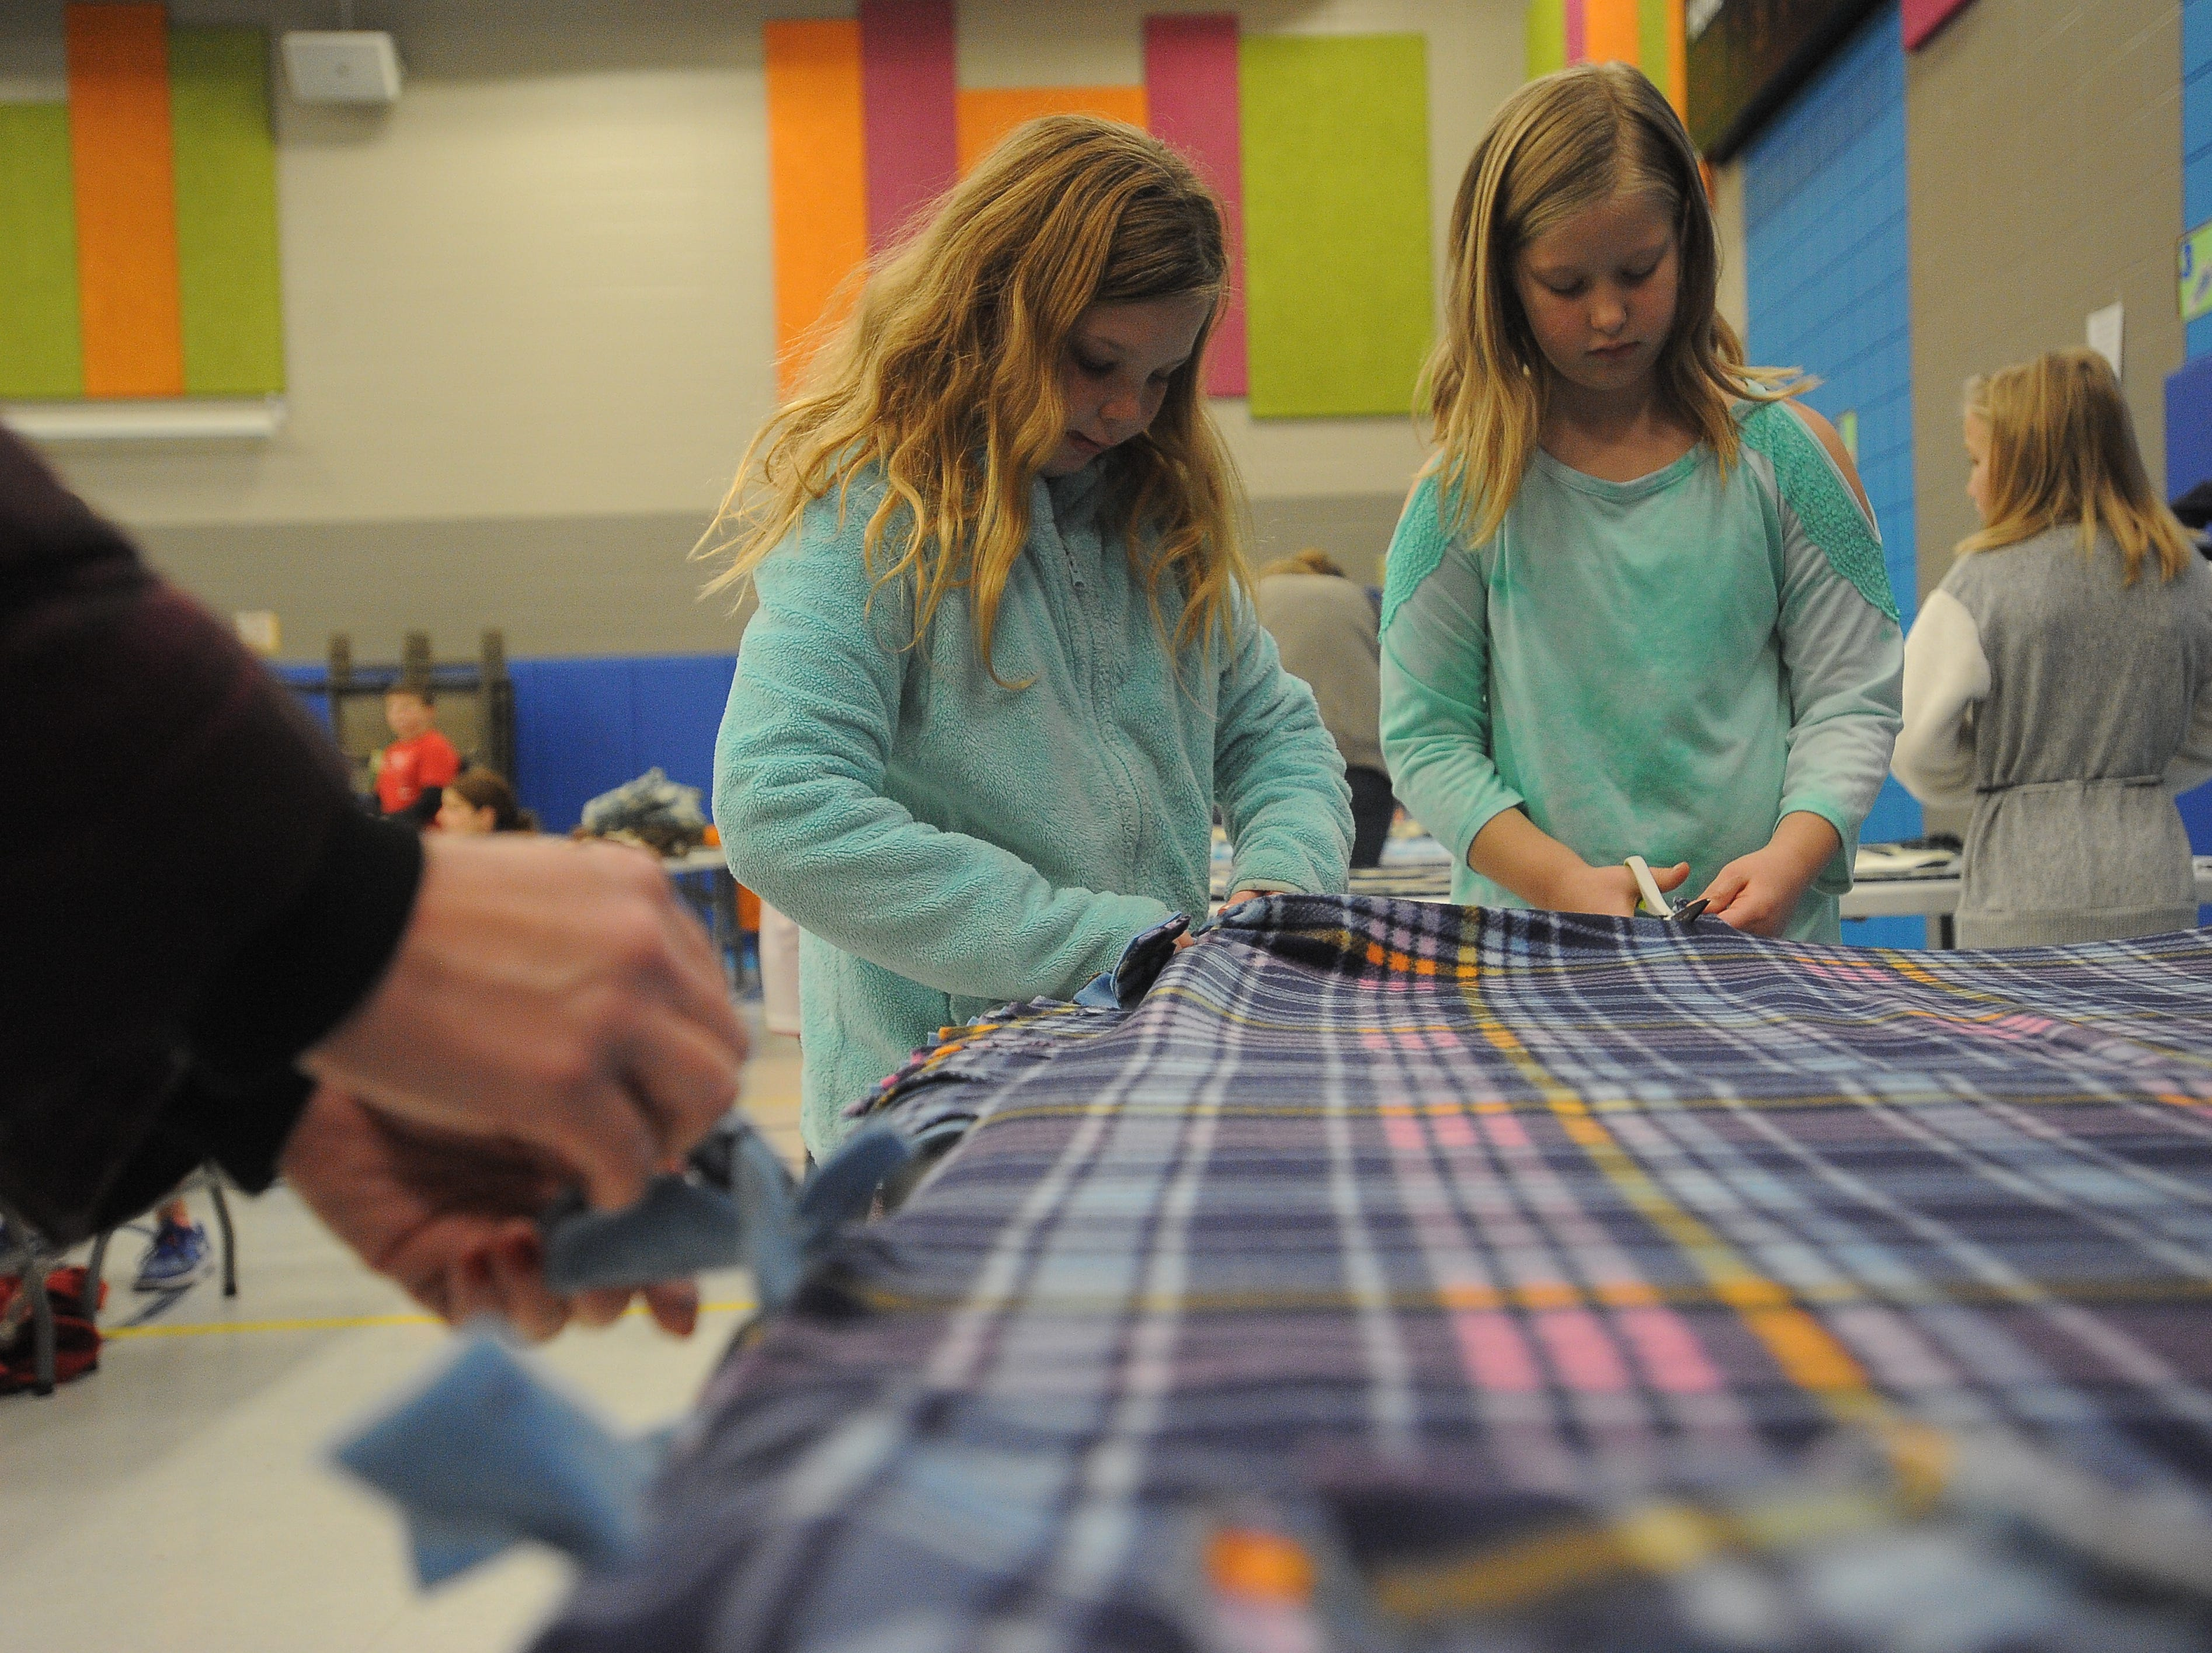 Mya, 8, and Addison, 9, make tie blankets Saturday, Dec. 8, 2018, as part of Project Warm-Up. In its 13th year, the project has delivered more than 20,000 blankets to children in need in and around Sioux Falls.